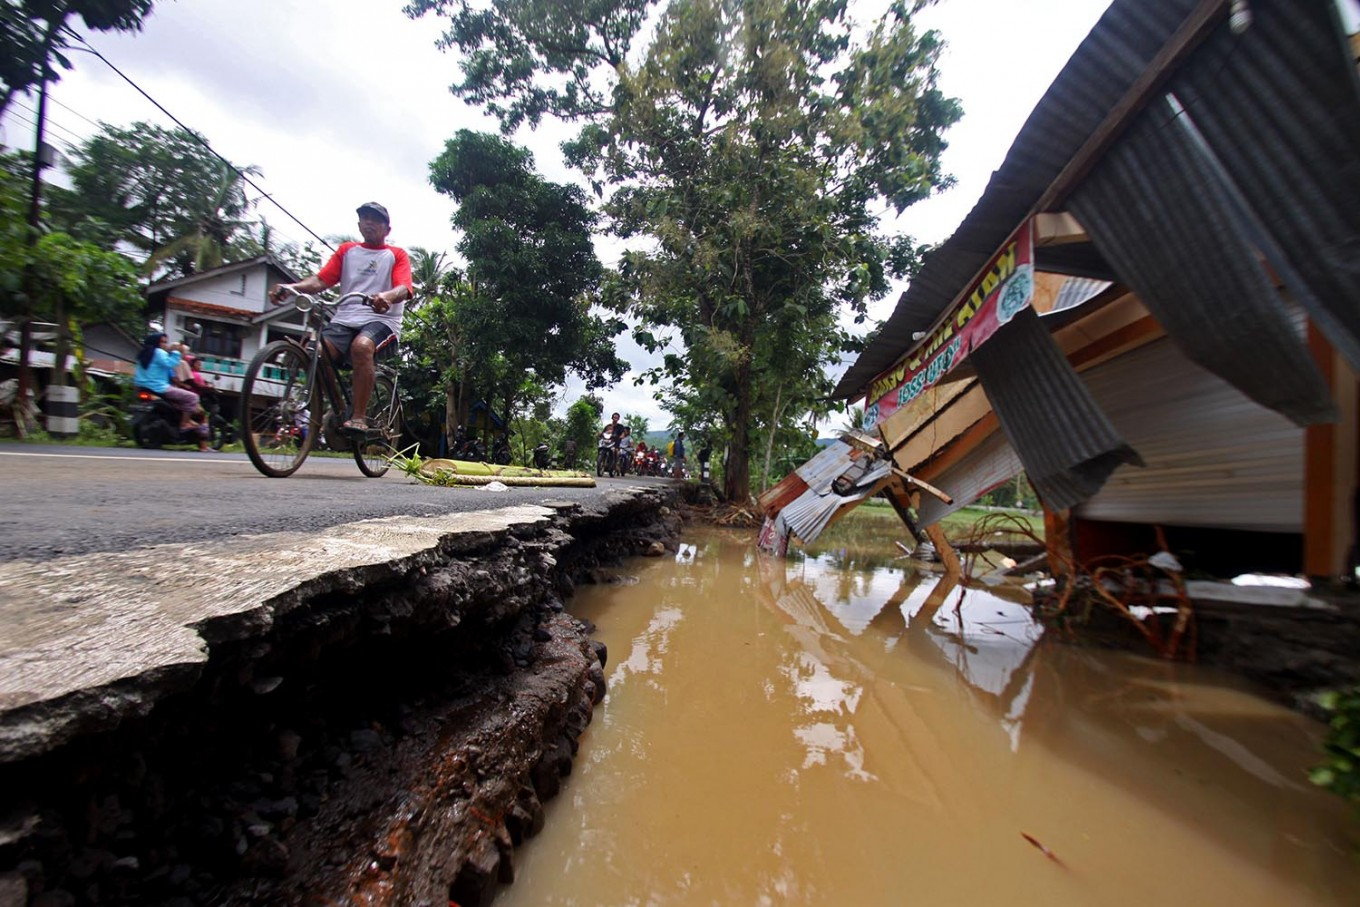 Villagers pass by a house destroyed by floods in Dogongan village, Imogiri district, in Bantul regency, Yogyakarta, on Wednesday Nov. 29, 2017. JP/Aditya Sagita